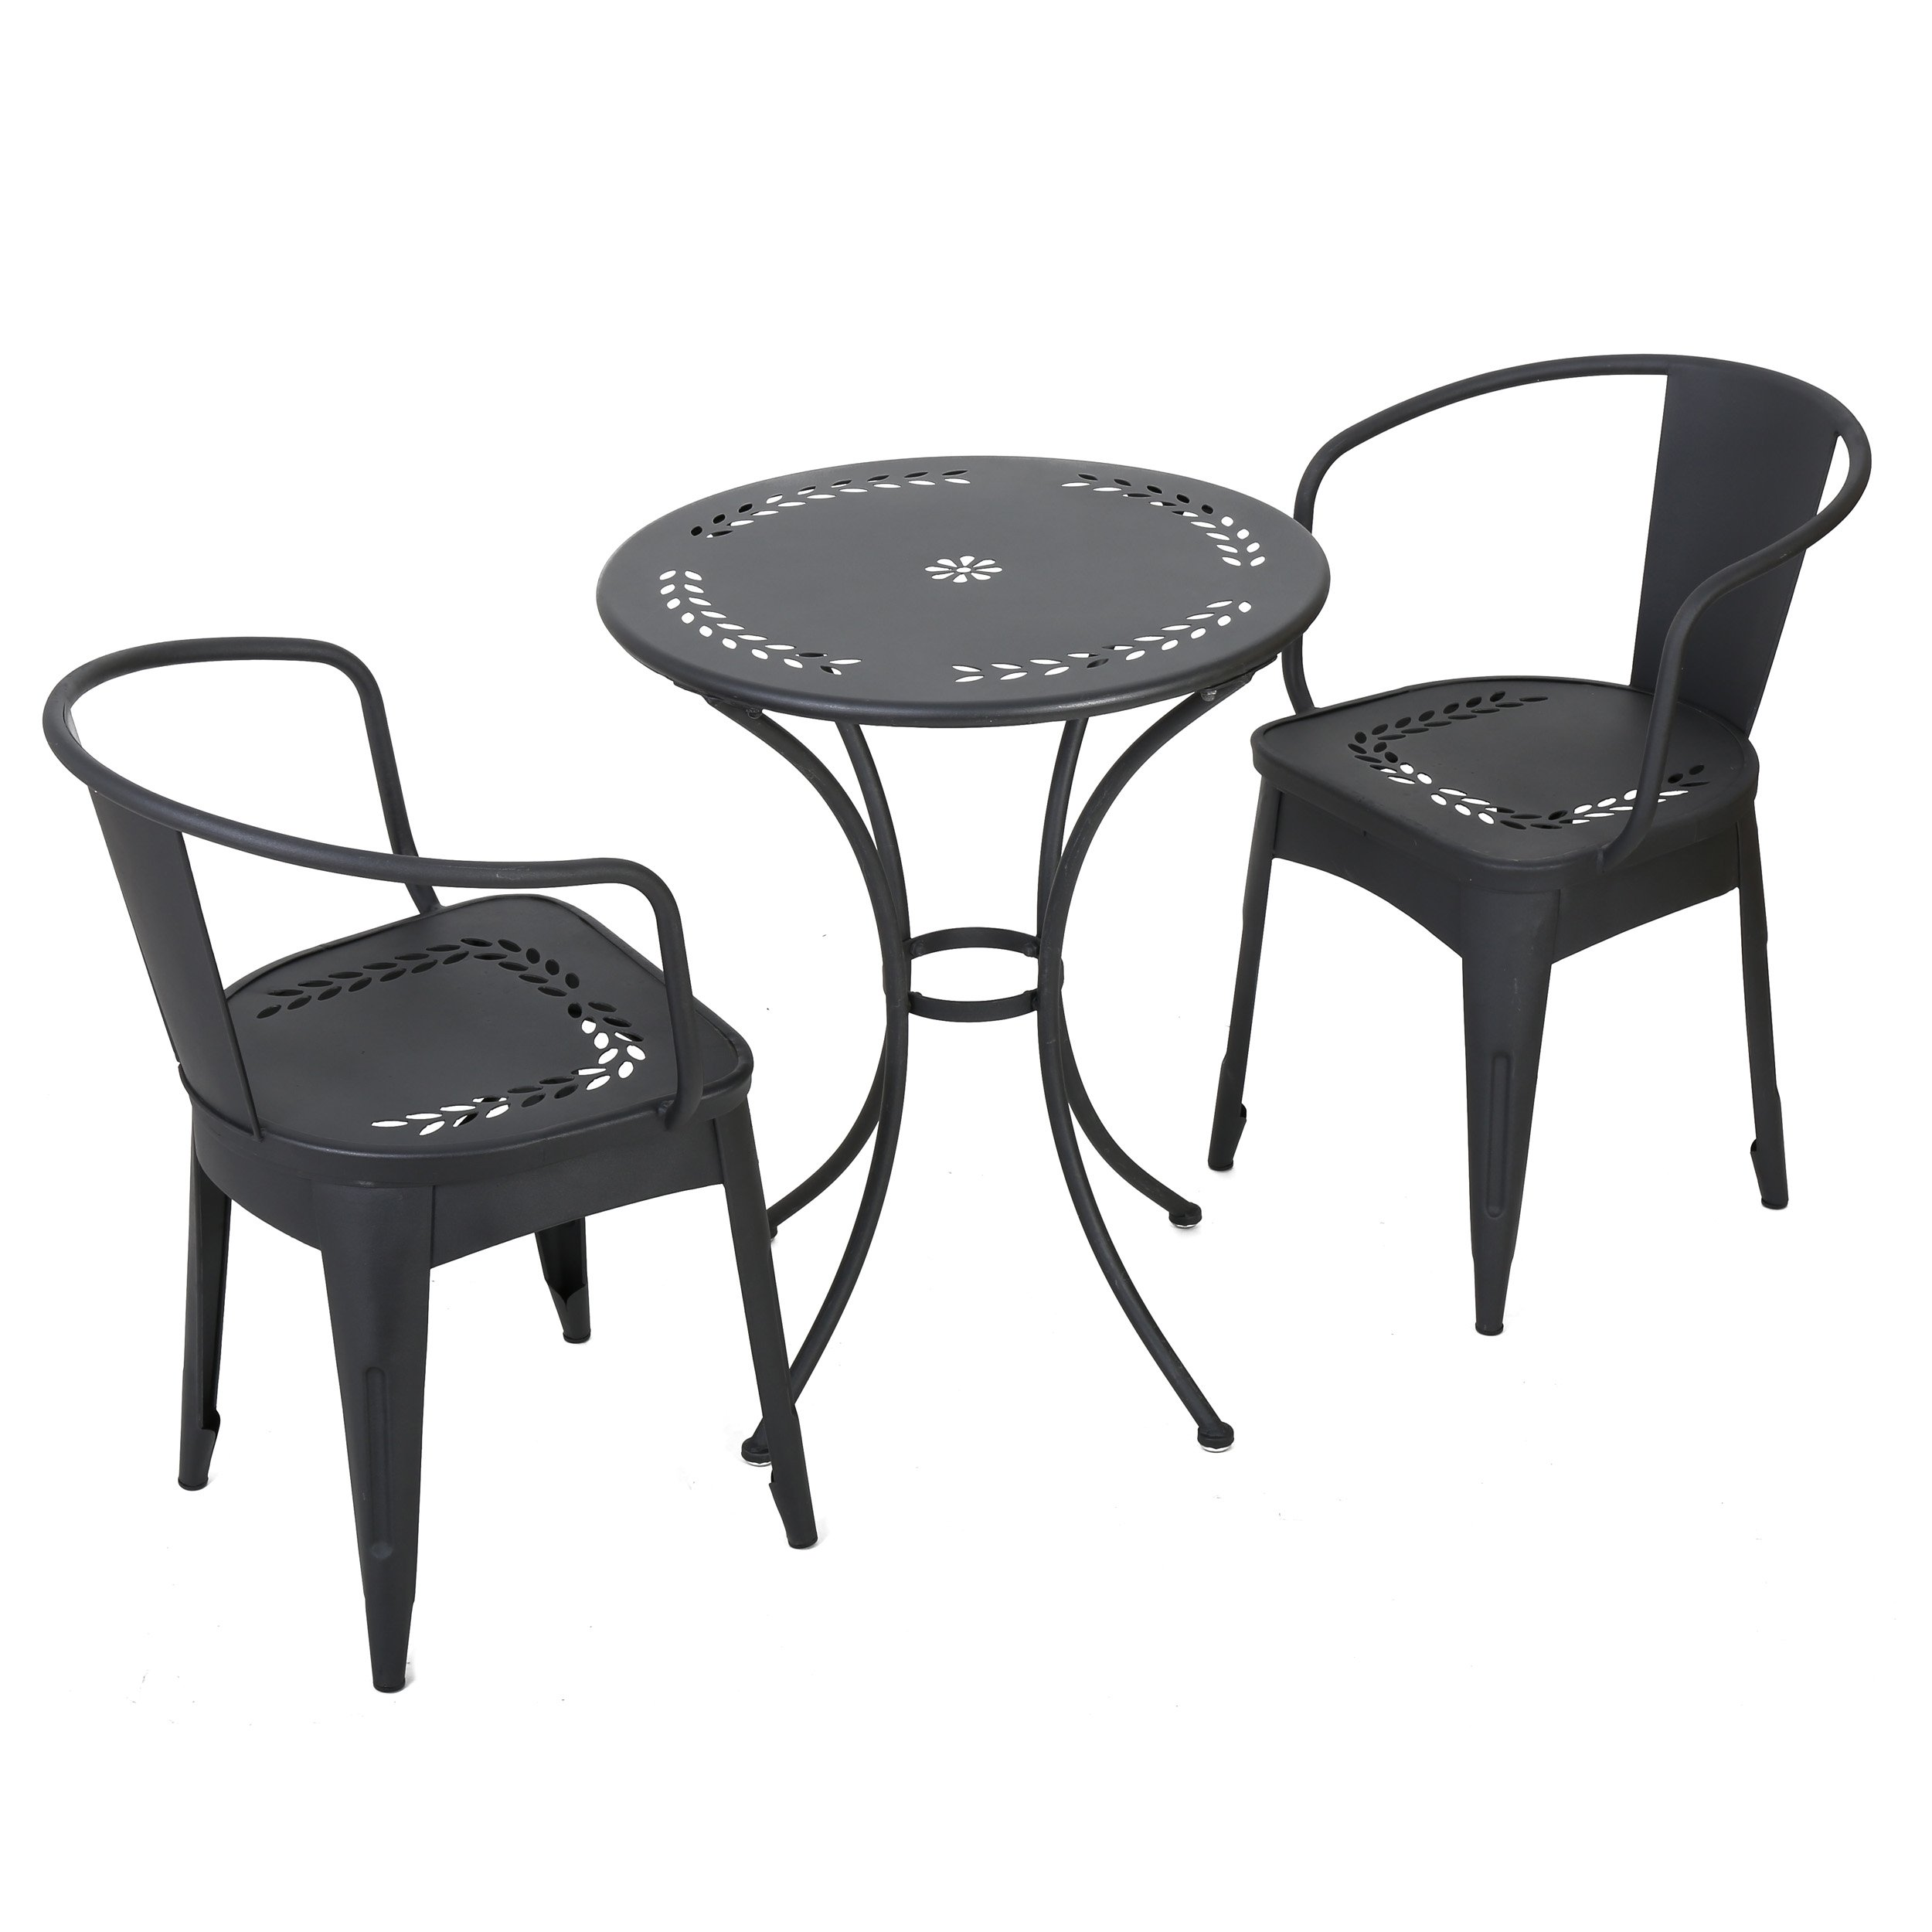 Ansel Childrens Black Table Chat Set by GDF Studio